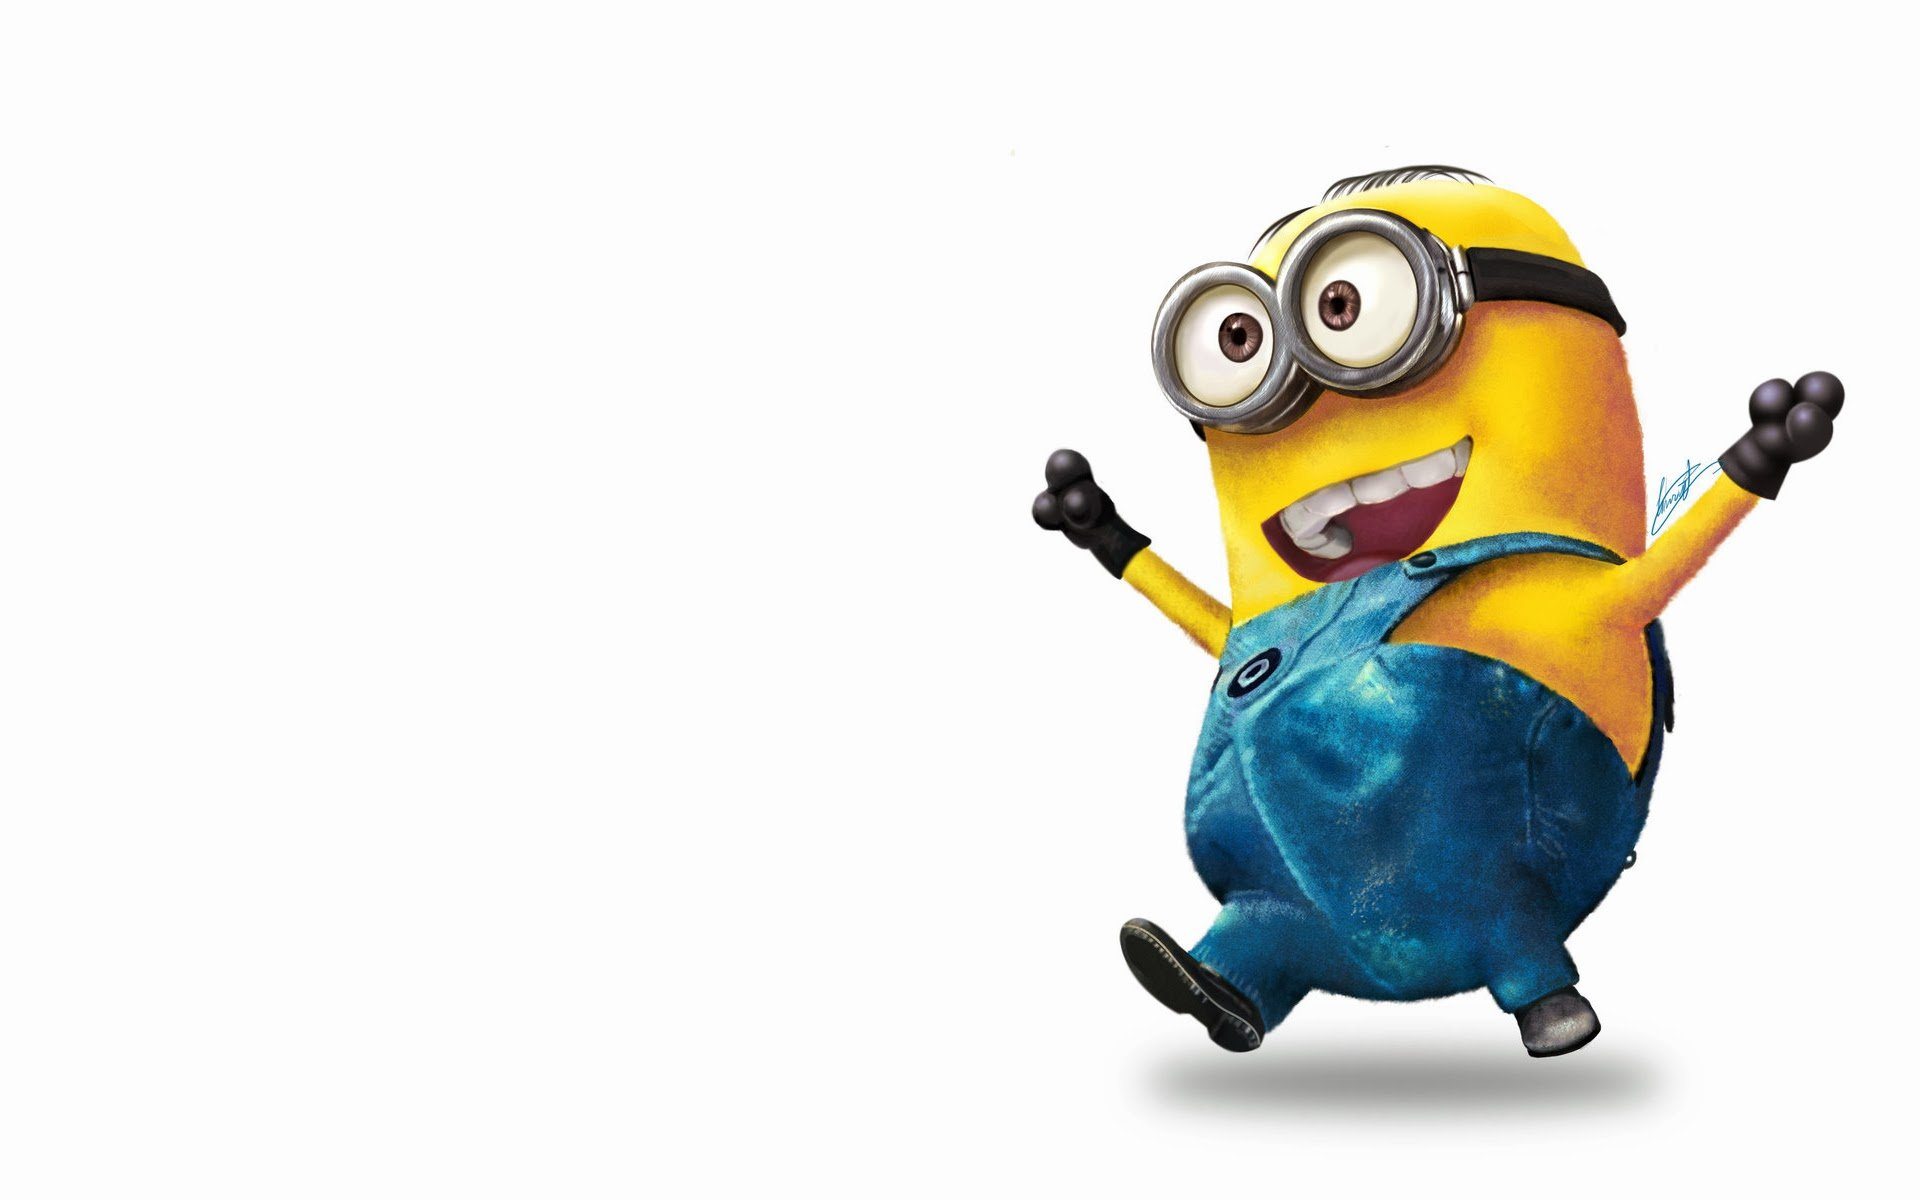 Free minion screensavers wallpaper wallpapersafari - Despicable me minion screensaver ...